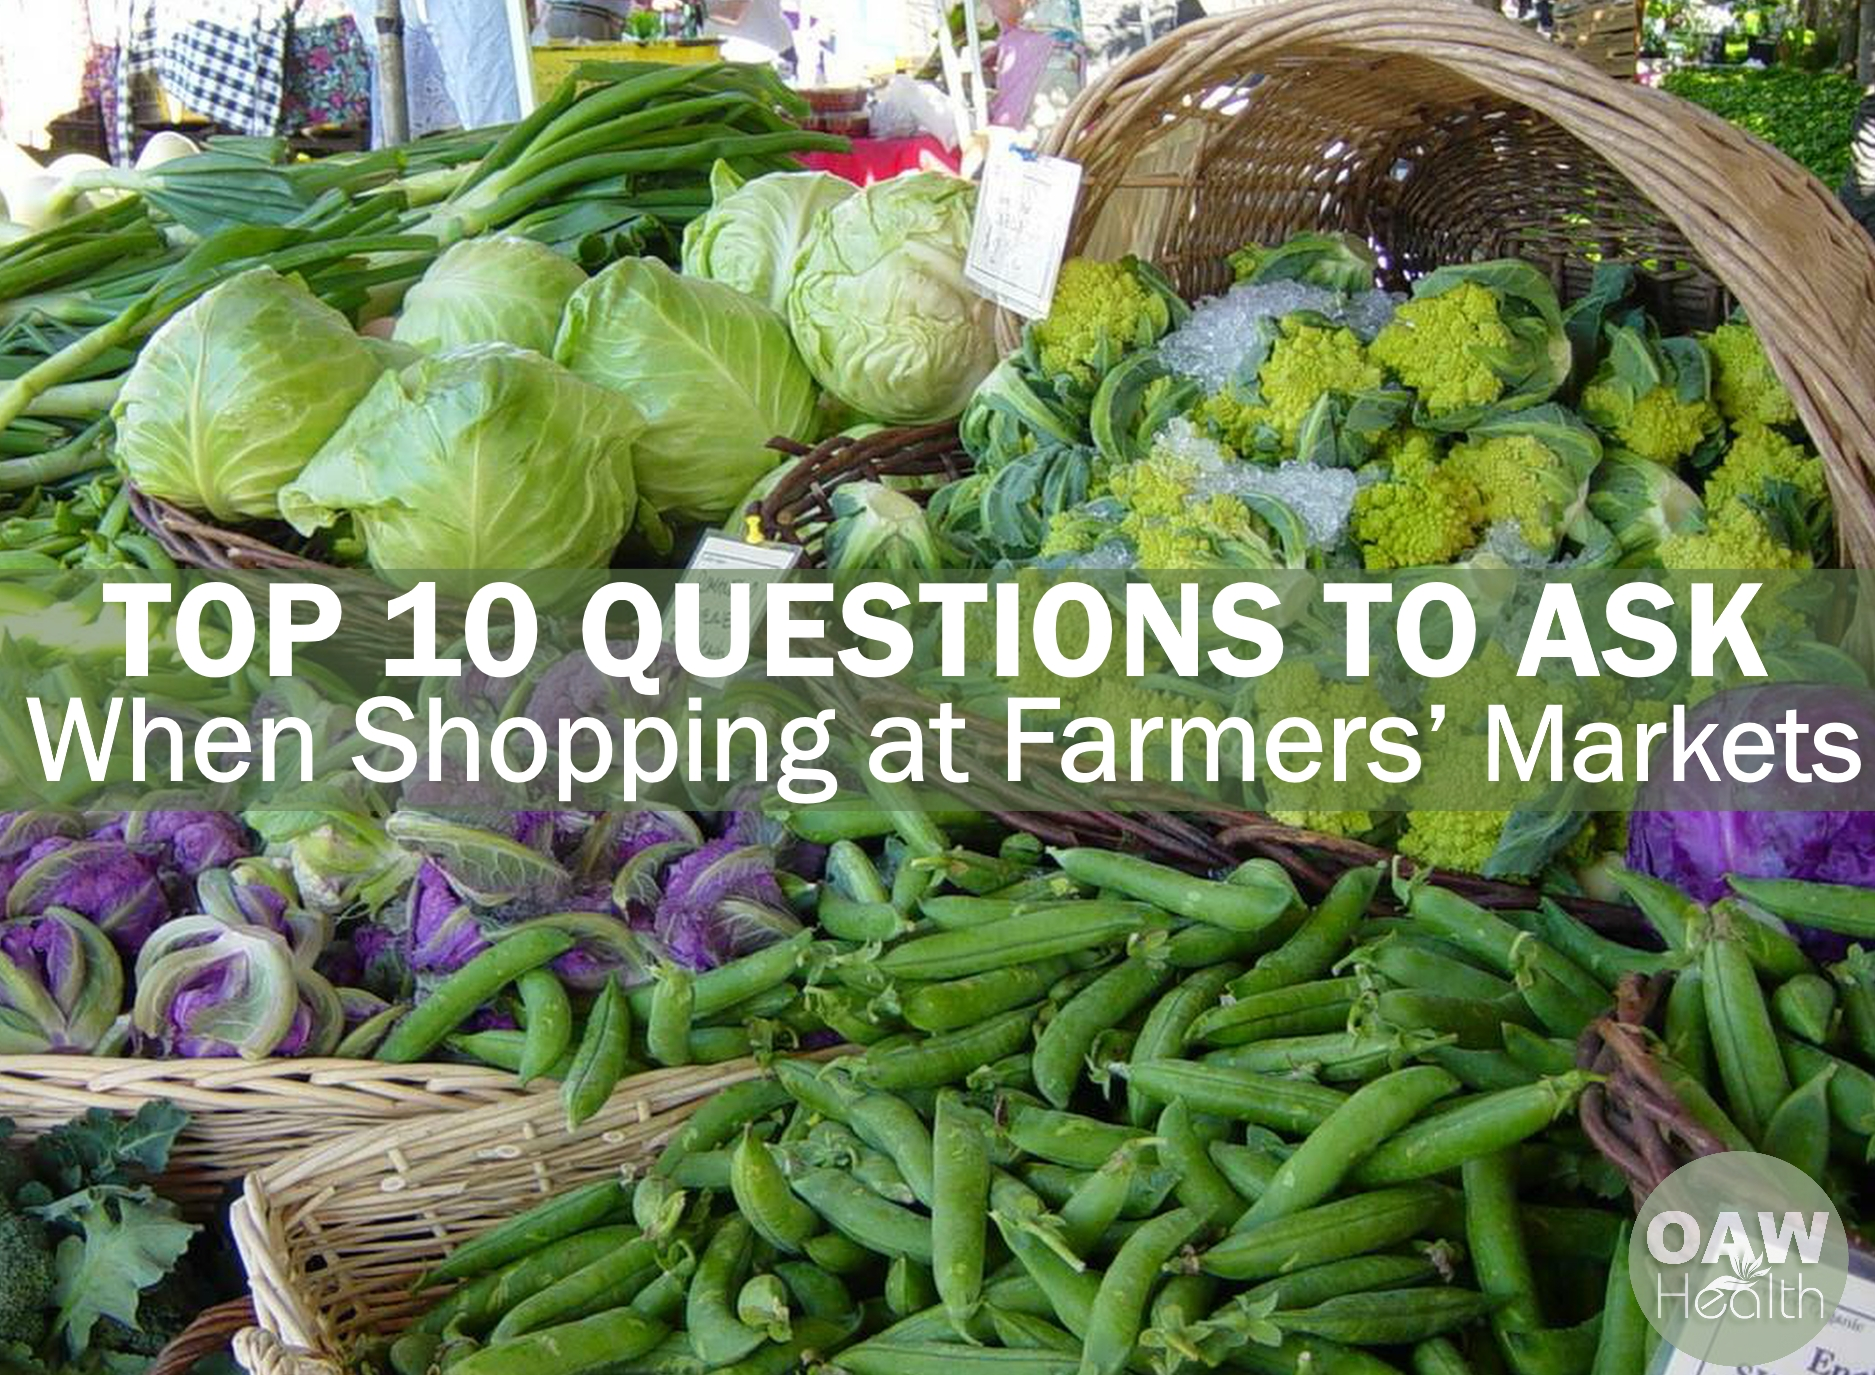 Top Ten Questions to Ask When Shopping at Farmers' Markets